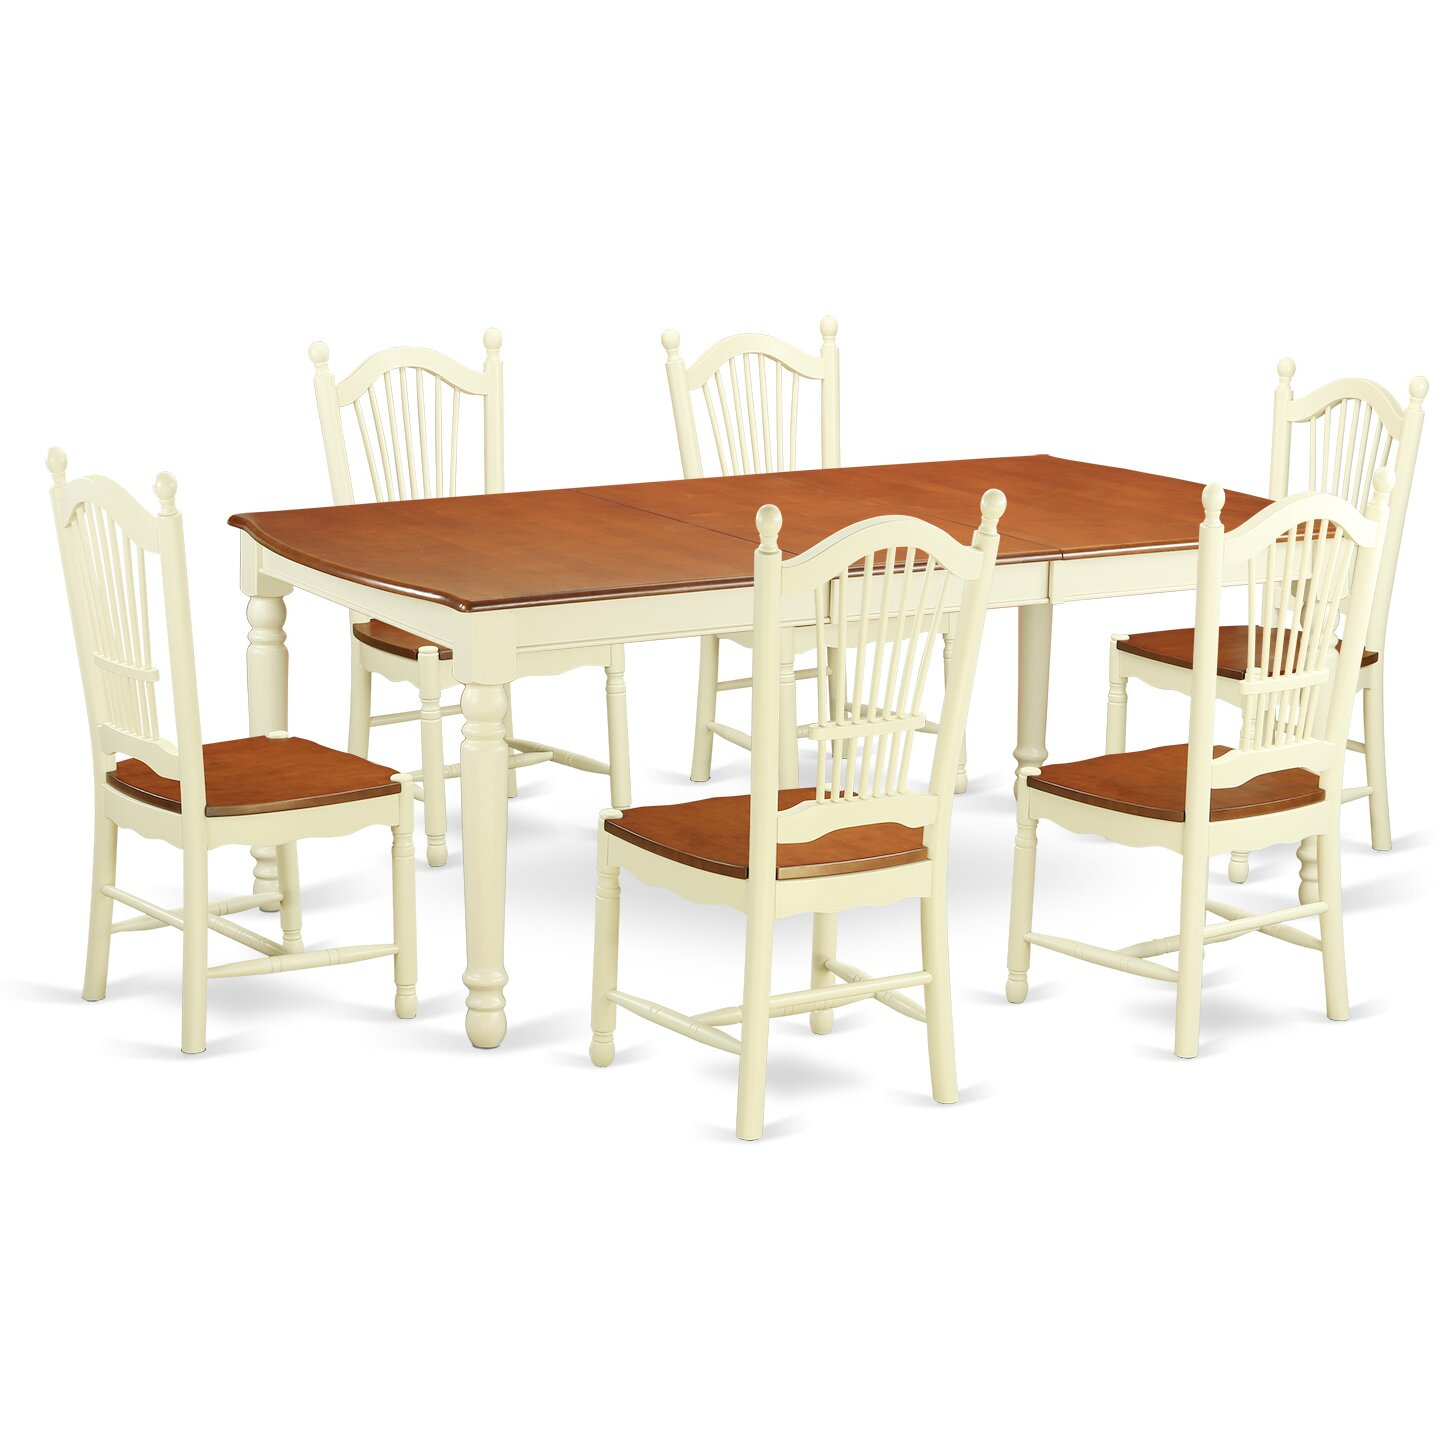 East west dover 7 piece dining set reviews wayfair for Kitchenette sets furniture